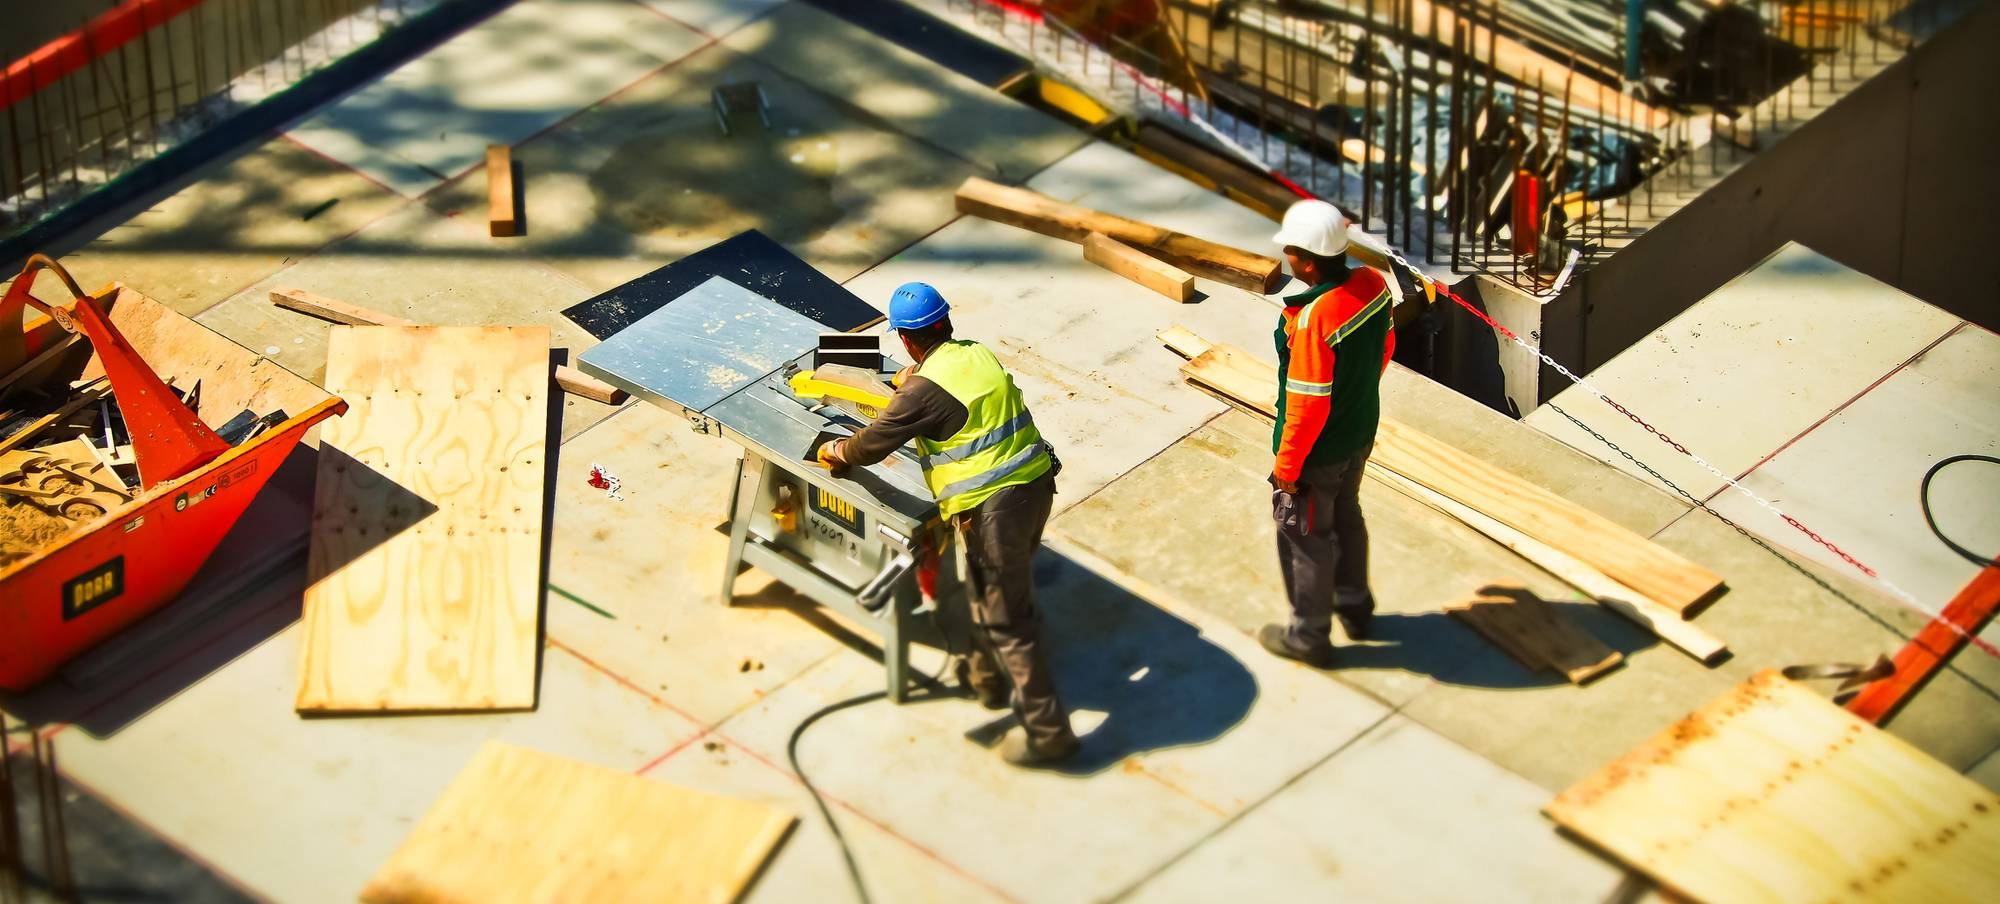 5 Safety Construction Tips for Your Workers' Well-Being